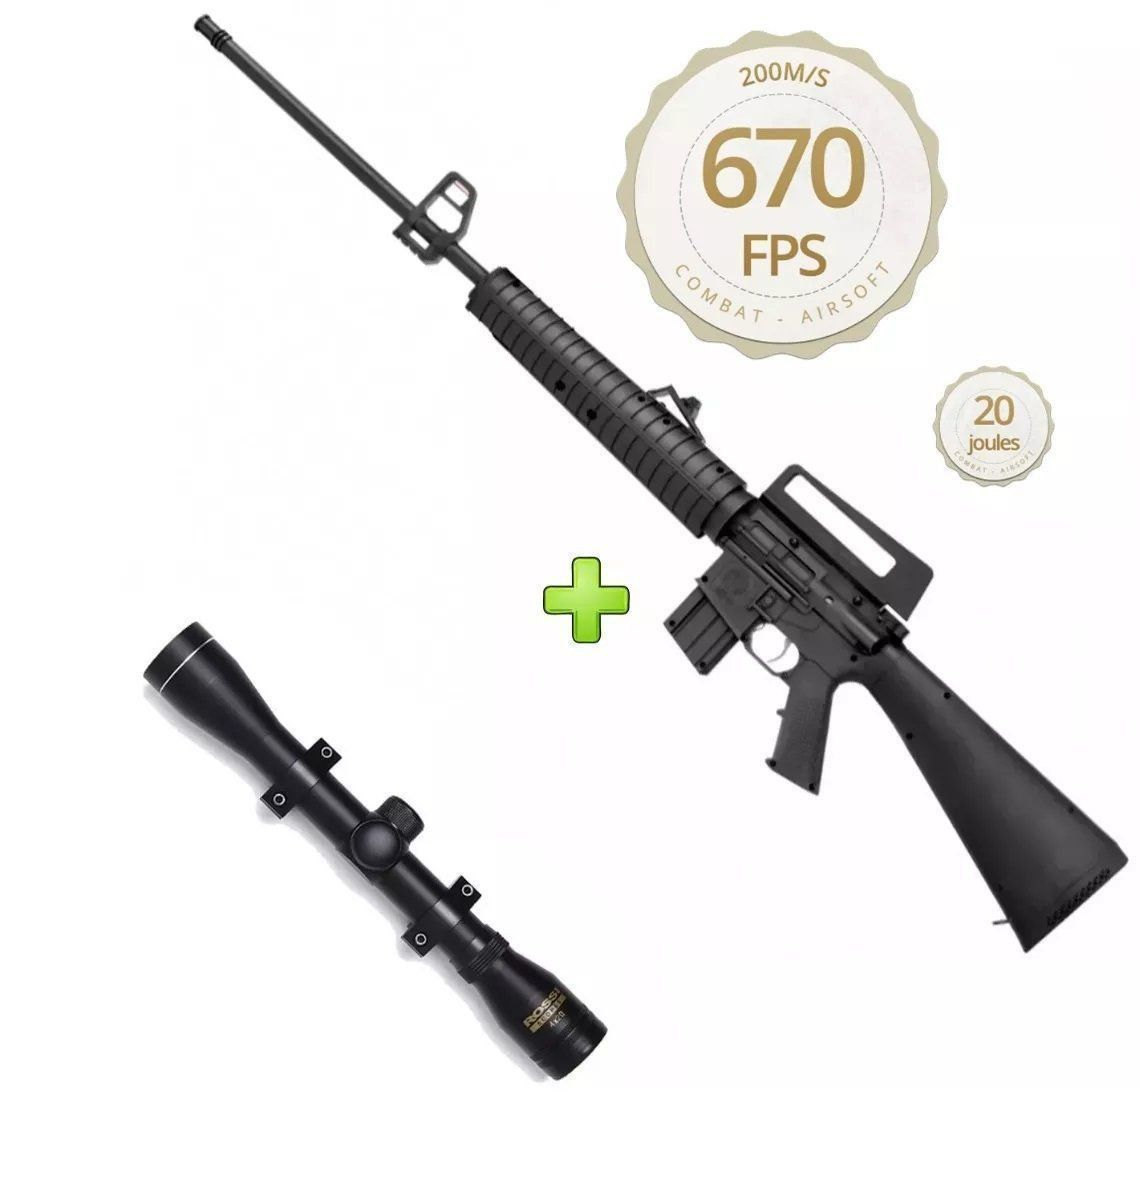 Kit Carabina Pressão Rossi Rifle M-16 R S - 5,5mm + Luneta 4x20